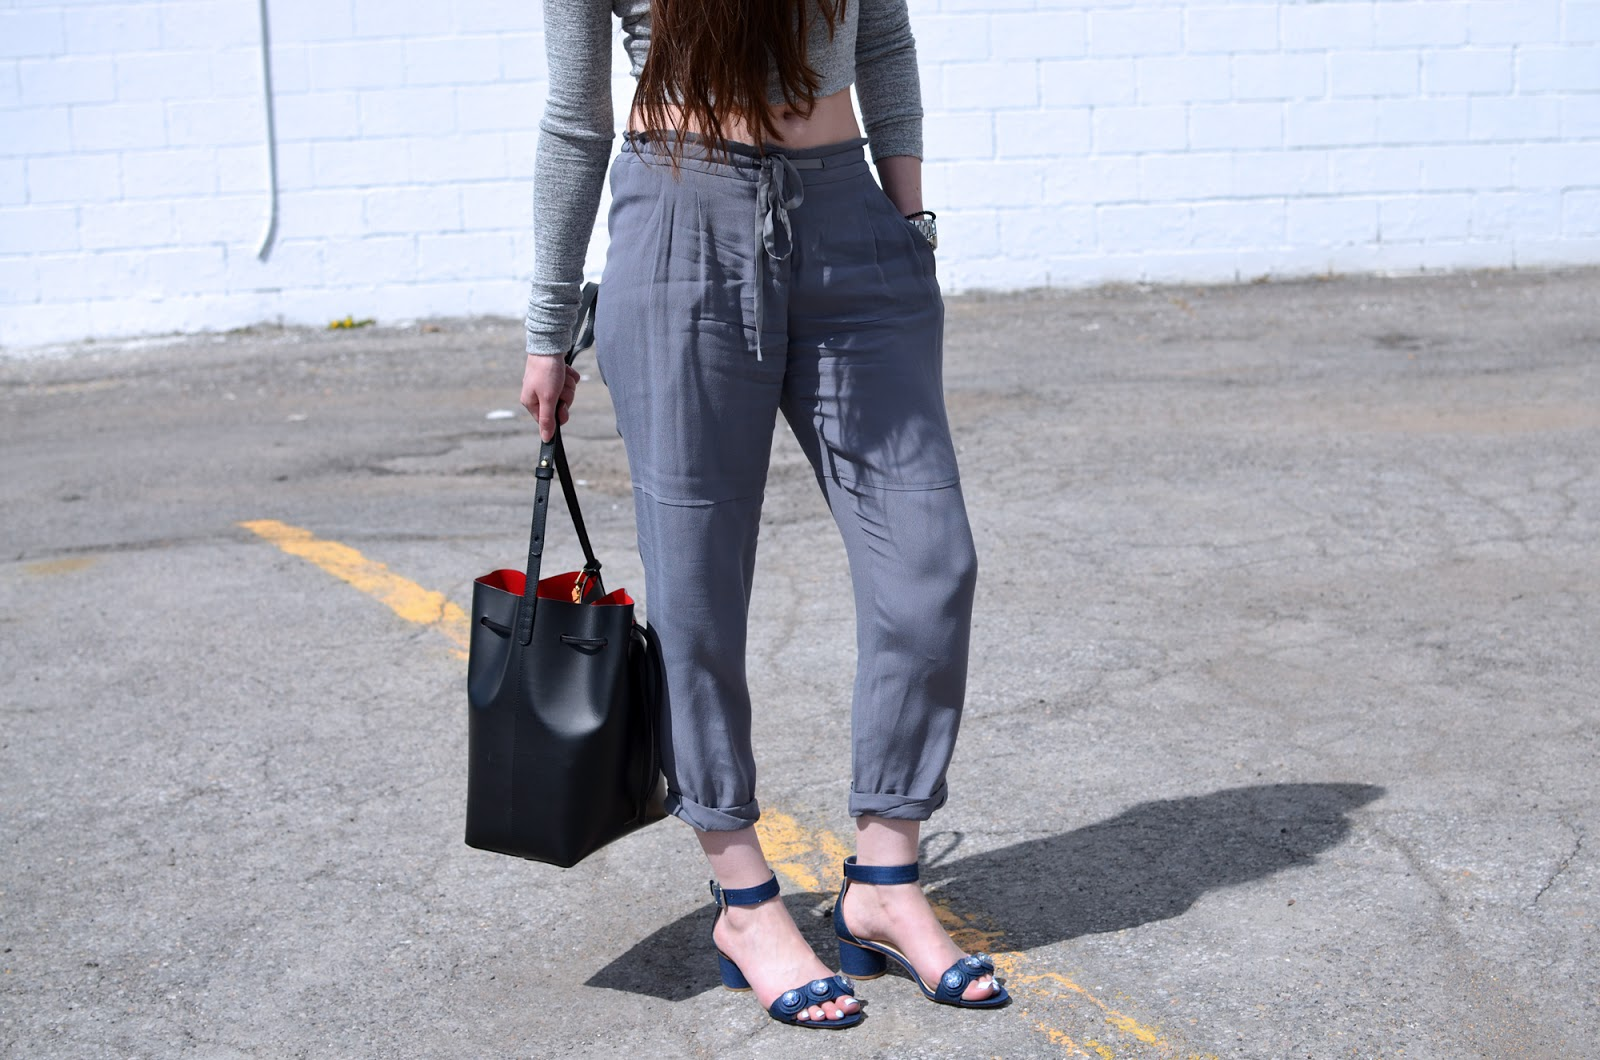 OOTD ft. Aritzia Wilfred Marais pants, Aritzia Georgia shirt, Mansur Gavriel bucket bag, and Zara jewelled sandals